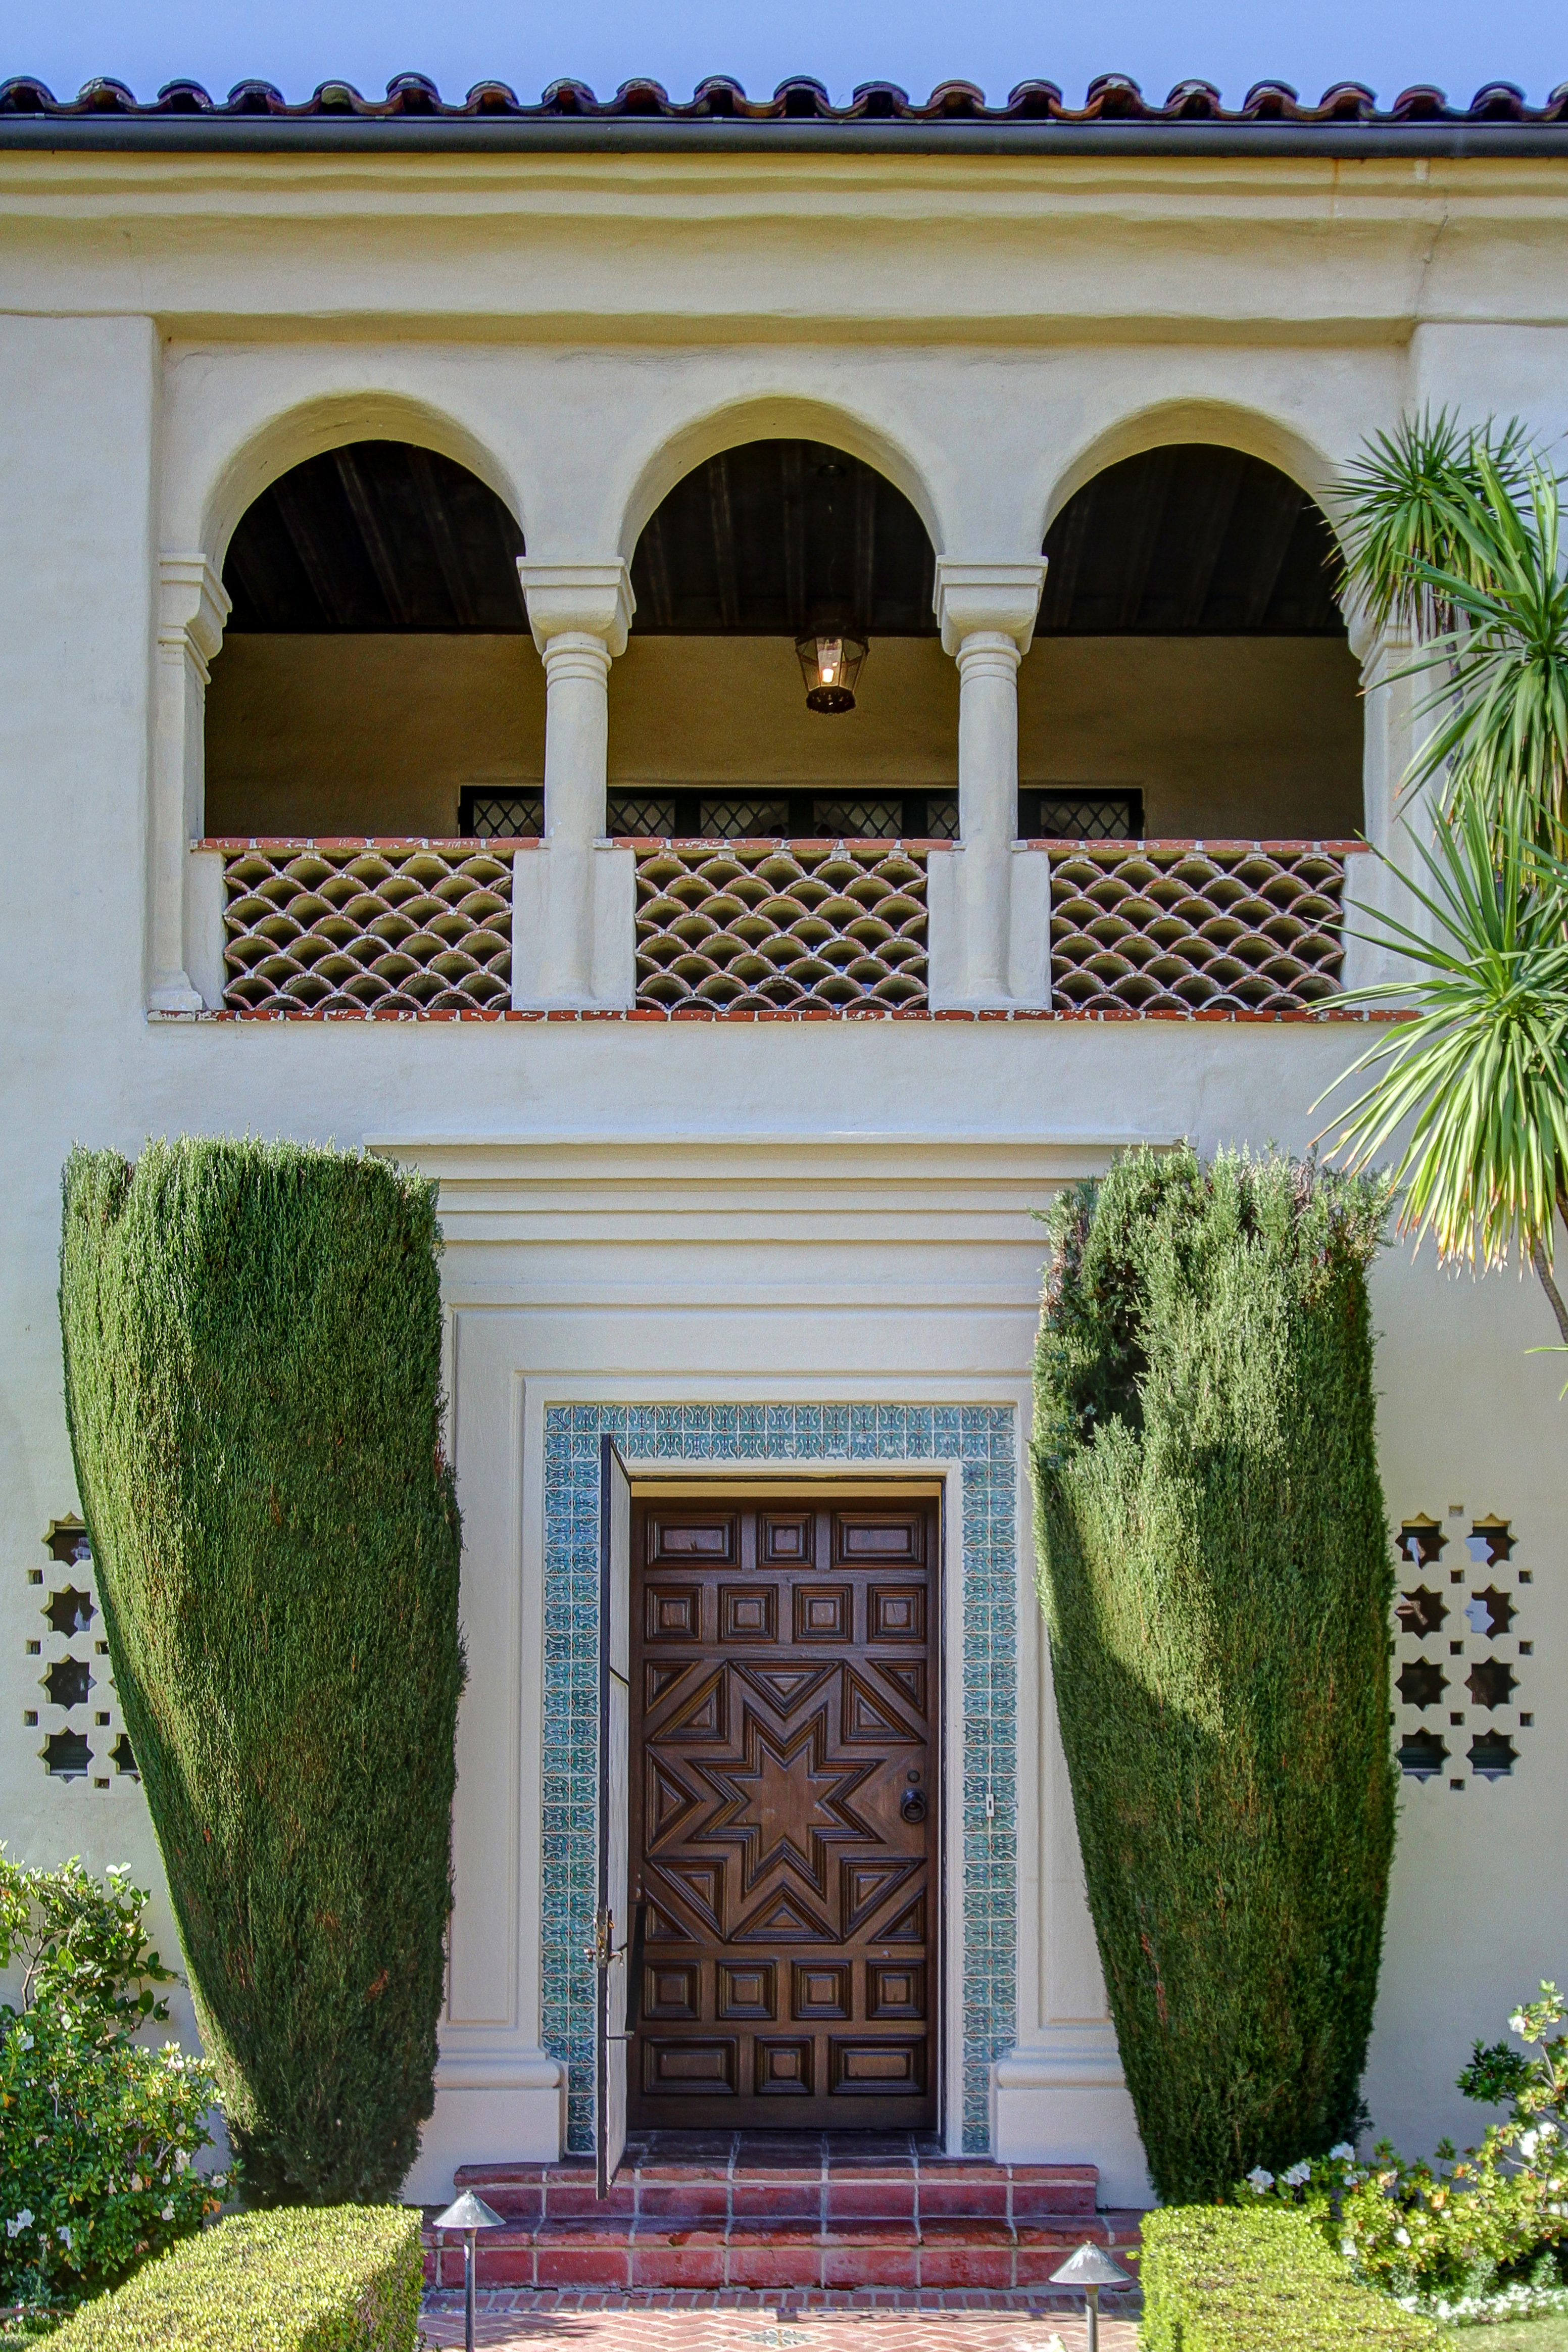 Spanish Revival the spanish revival of our dreams is for sale in pasadena for $5.8